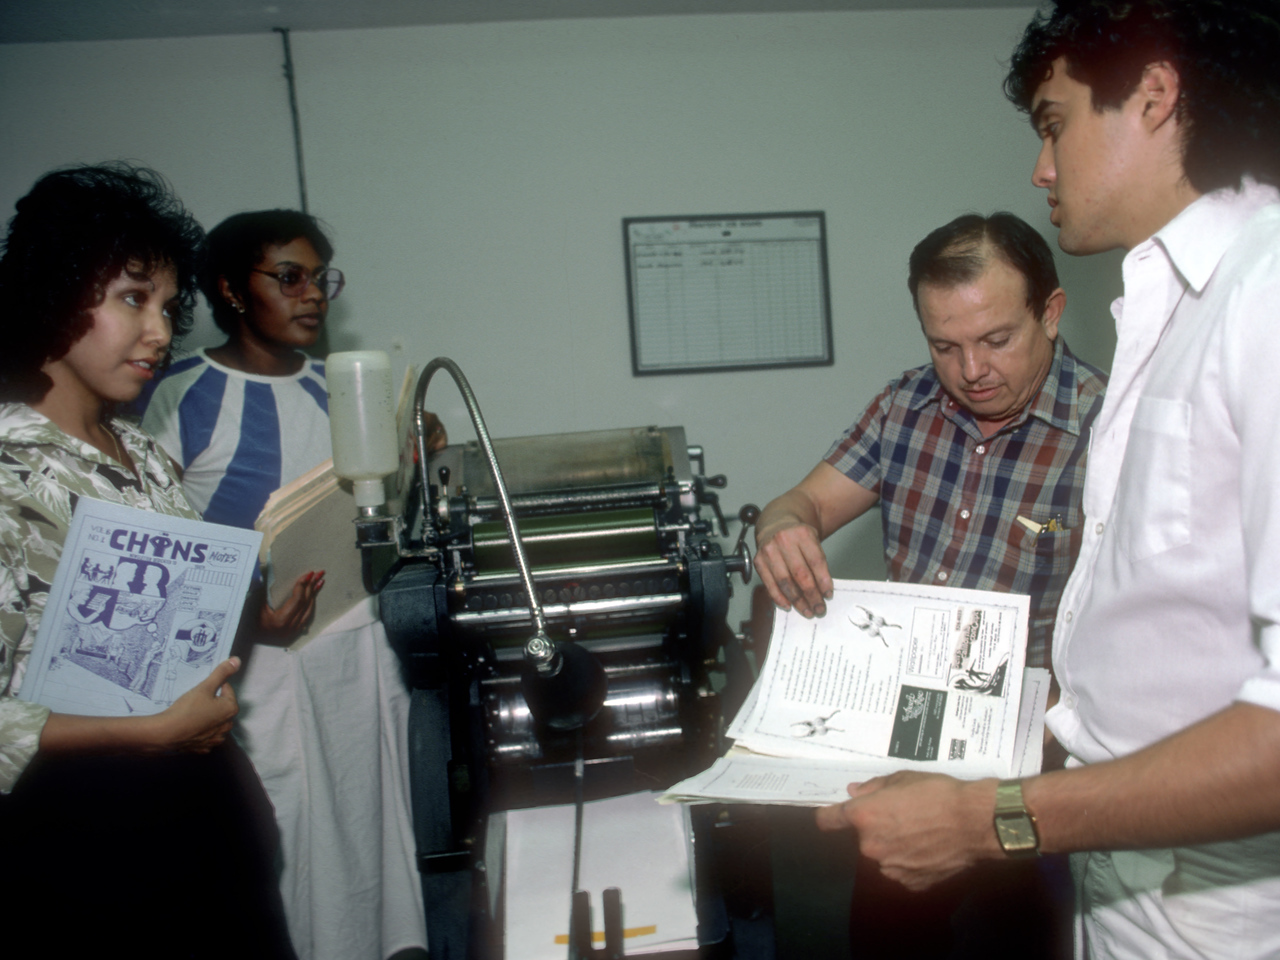 Printer Isidro Garcia (plaid shirt) discusses the publication of the next issue of CHINS Notes, a magazine reflecting the experiences of young people in Las Cruces, New Mexico, with VISTA members (left to right) Annette Alvarez, Norma Scott, and Derek Rubio in 1986. (© 1986 Corporation for National and Community Service - Office of Public Affairs)